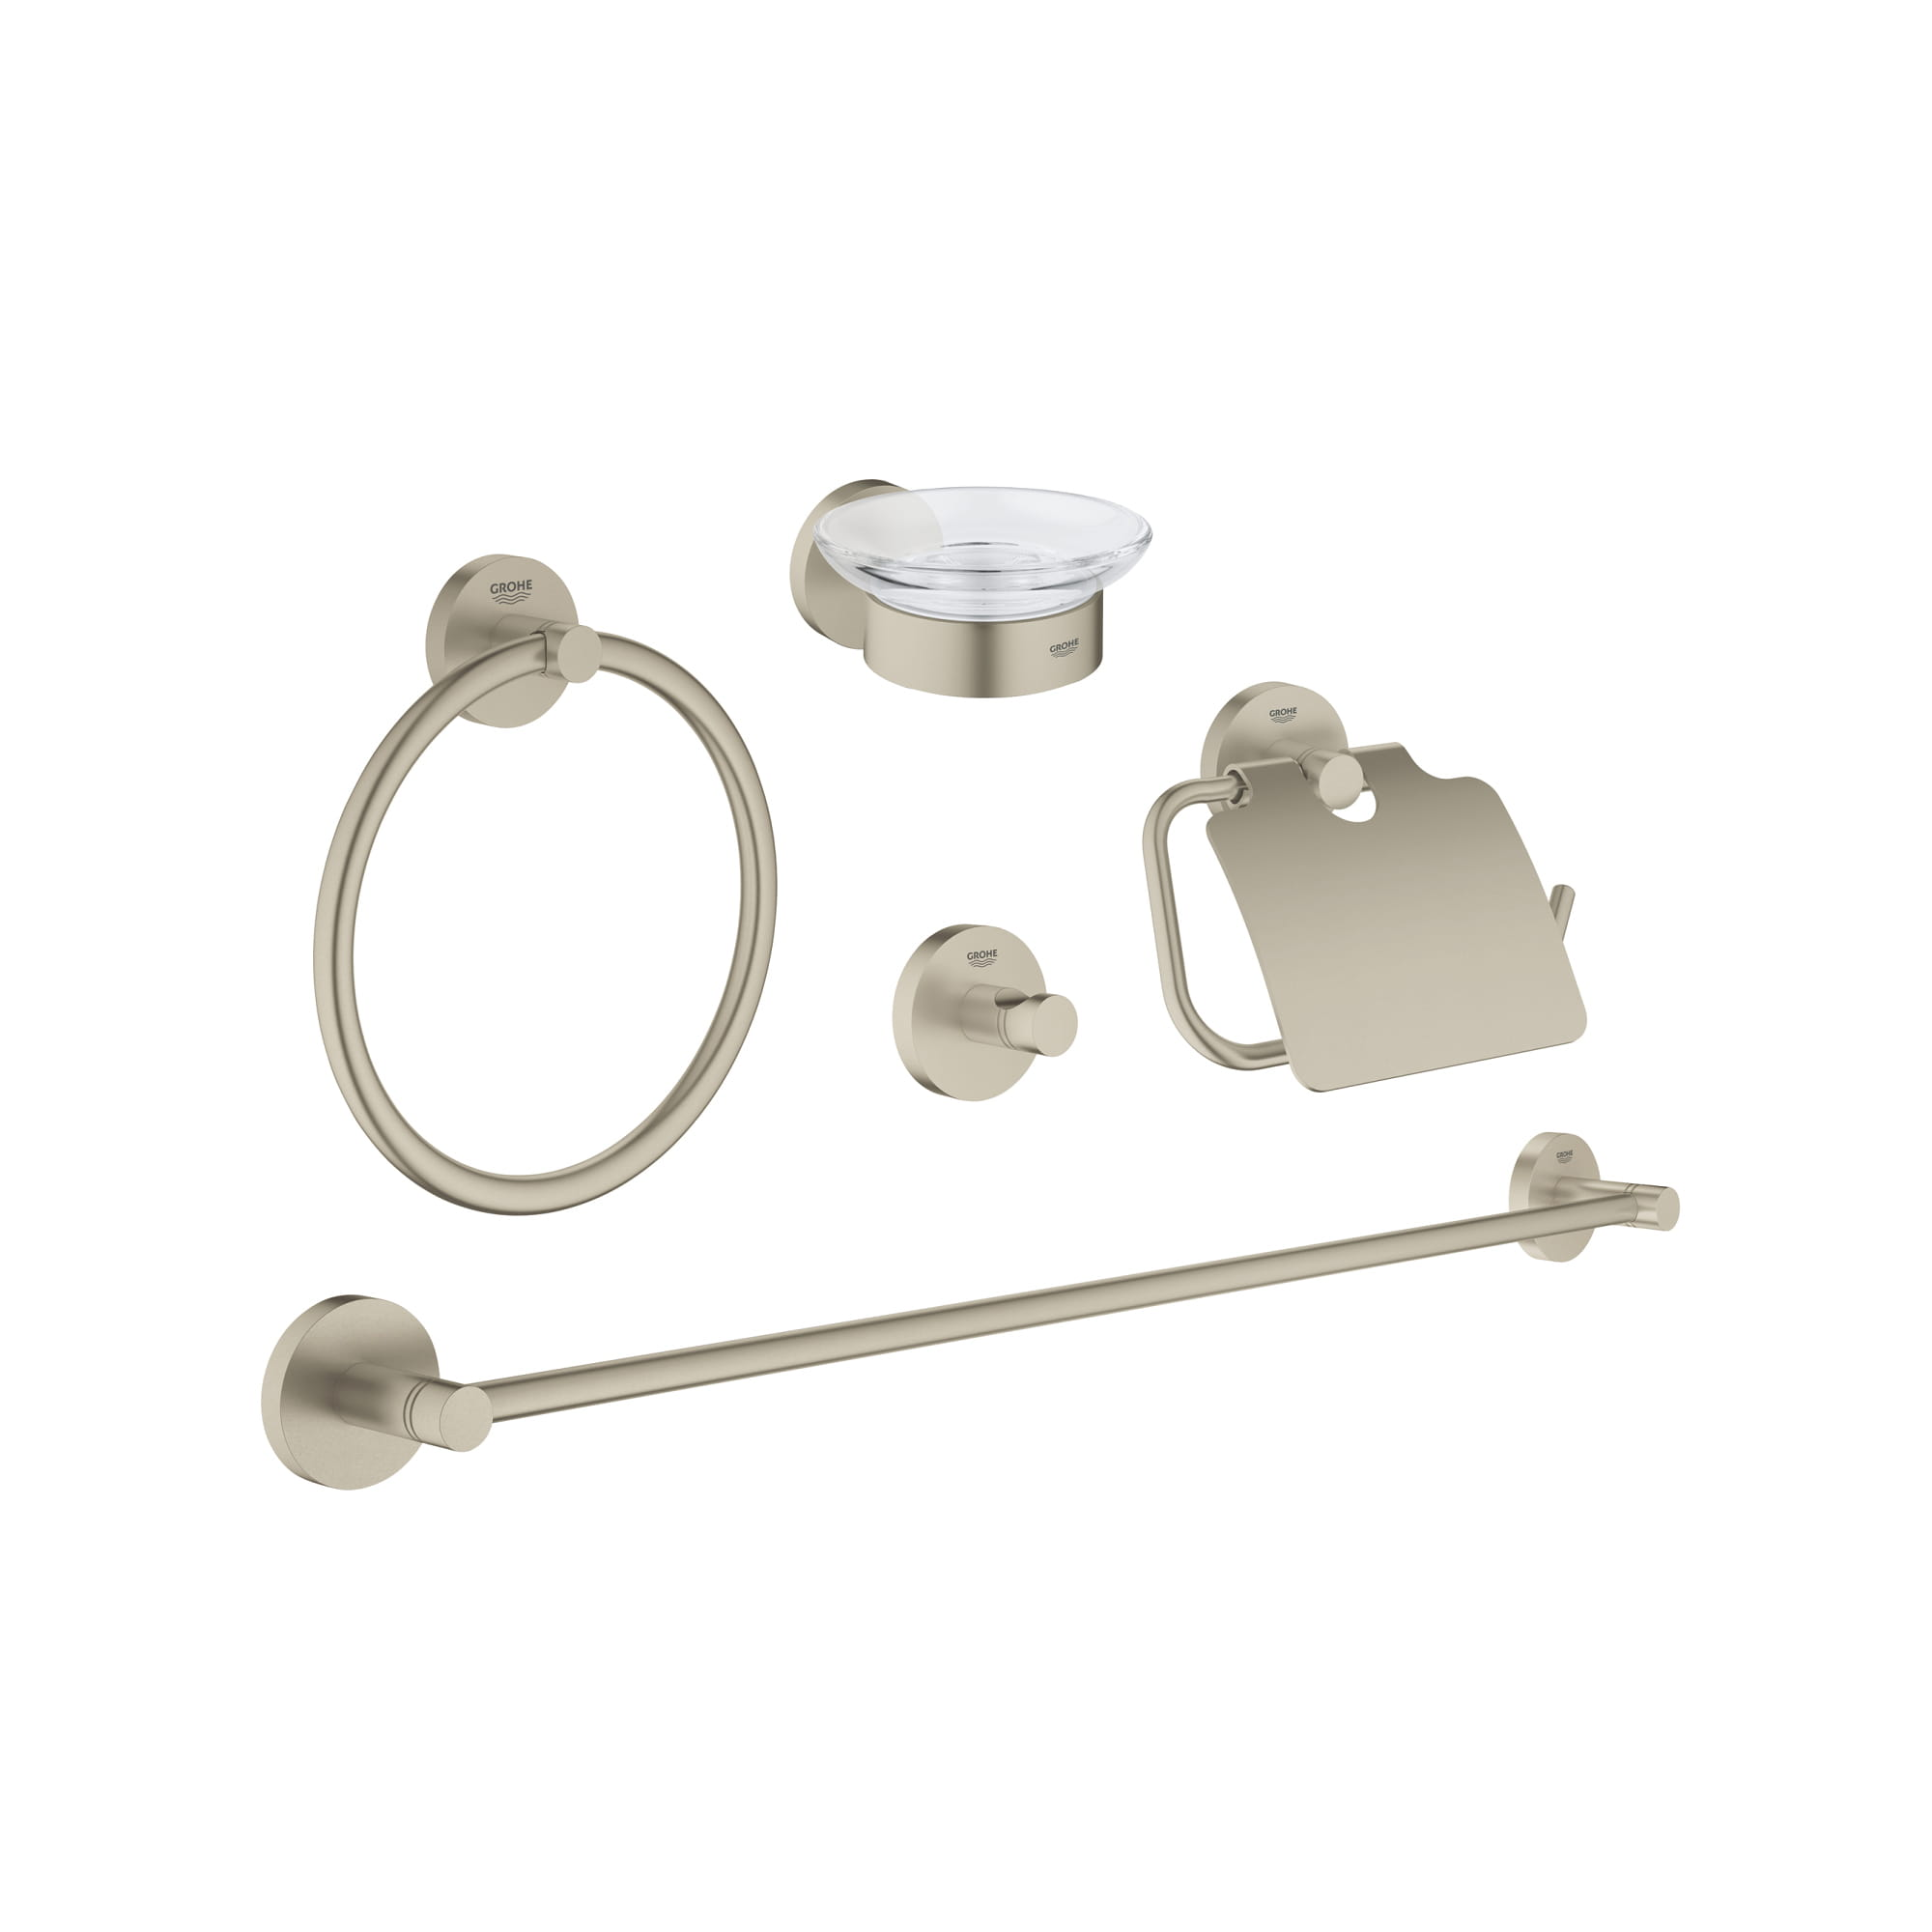 Essentials Ensemble pour salle de bain principale 5 en 1 GROHE BRUSHED NICKEL